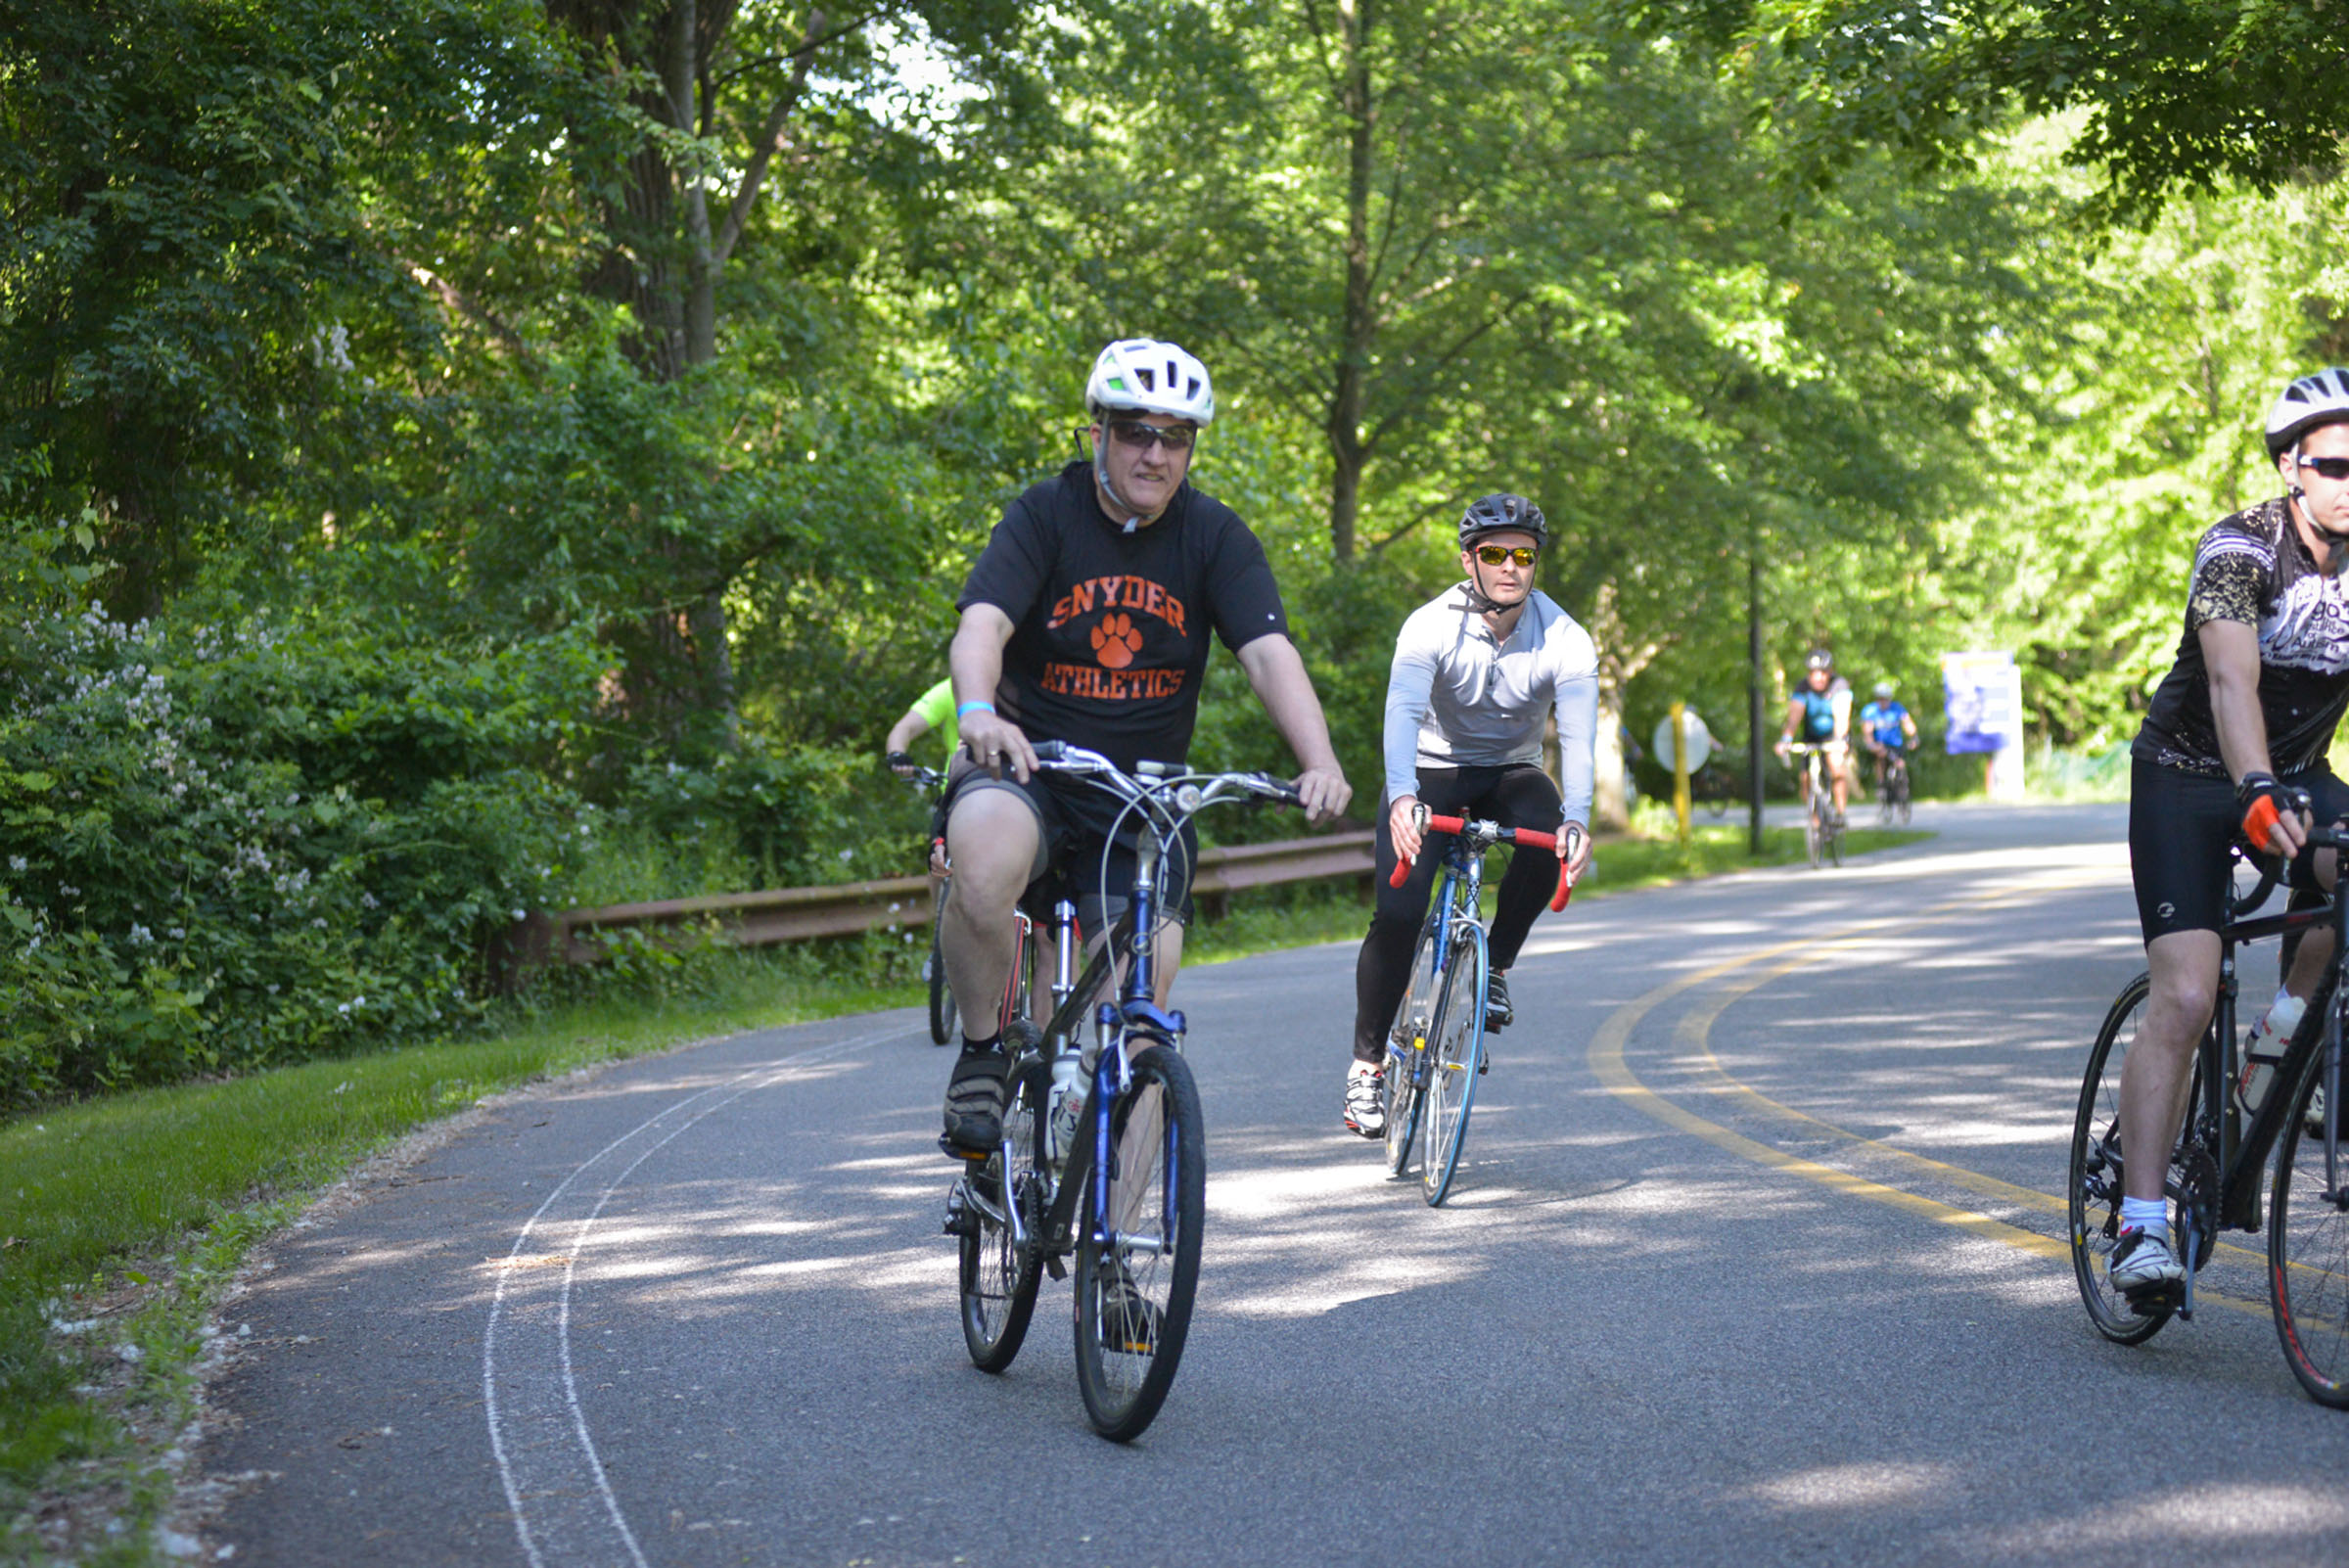 2017-06-04 GTD4A Charity Bike Ride - BCC - Paramus NJ-1863.jpg